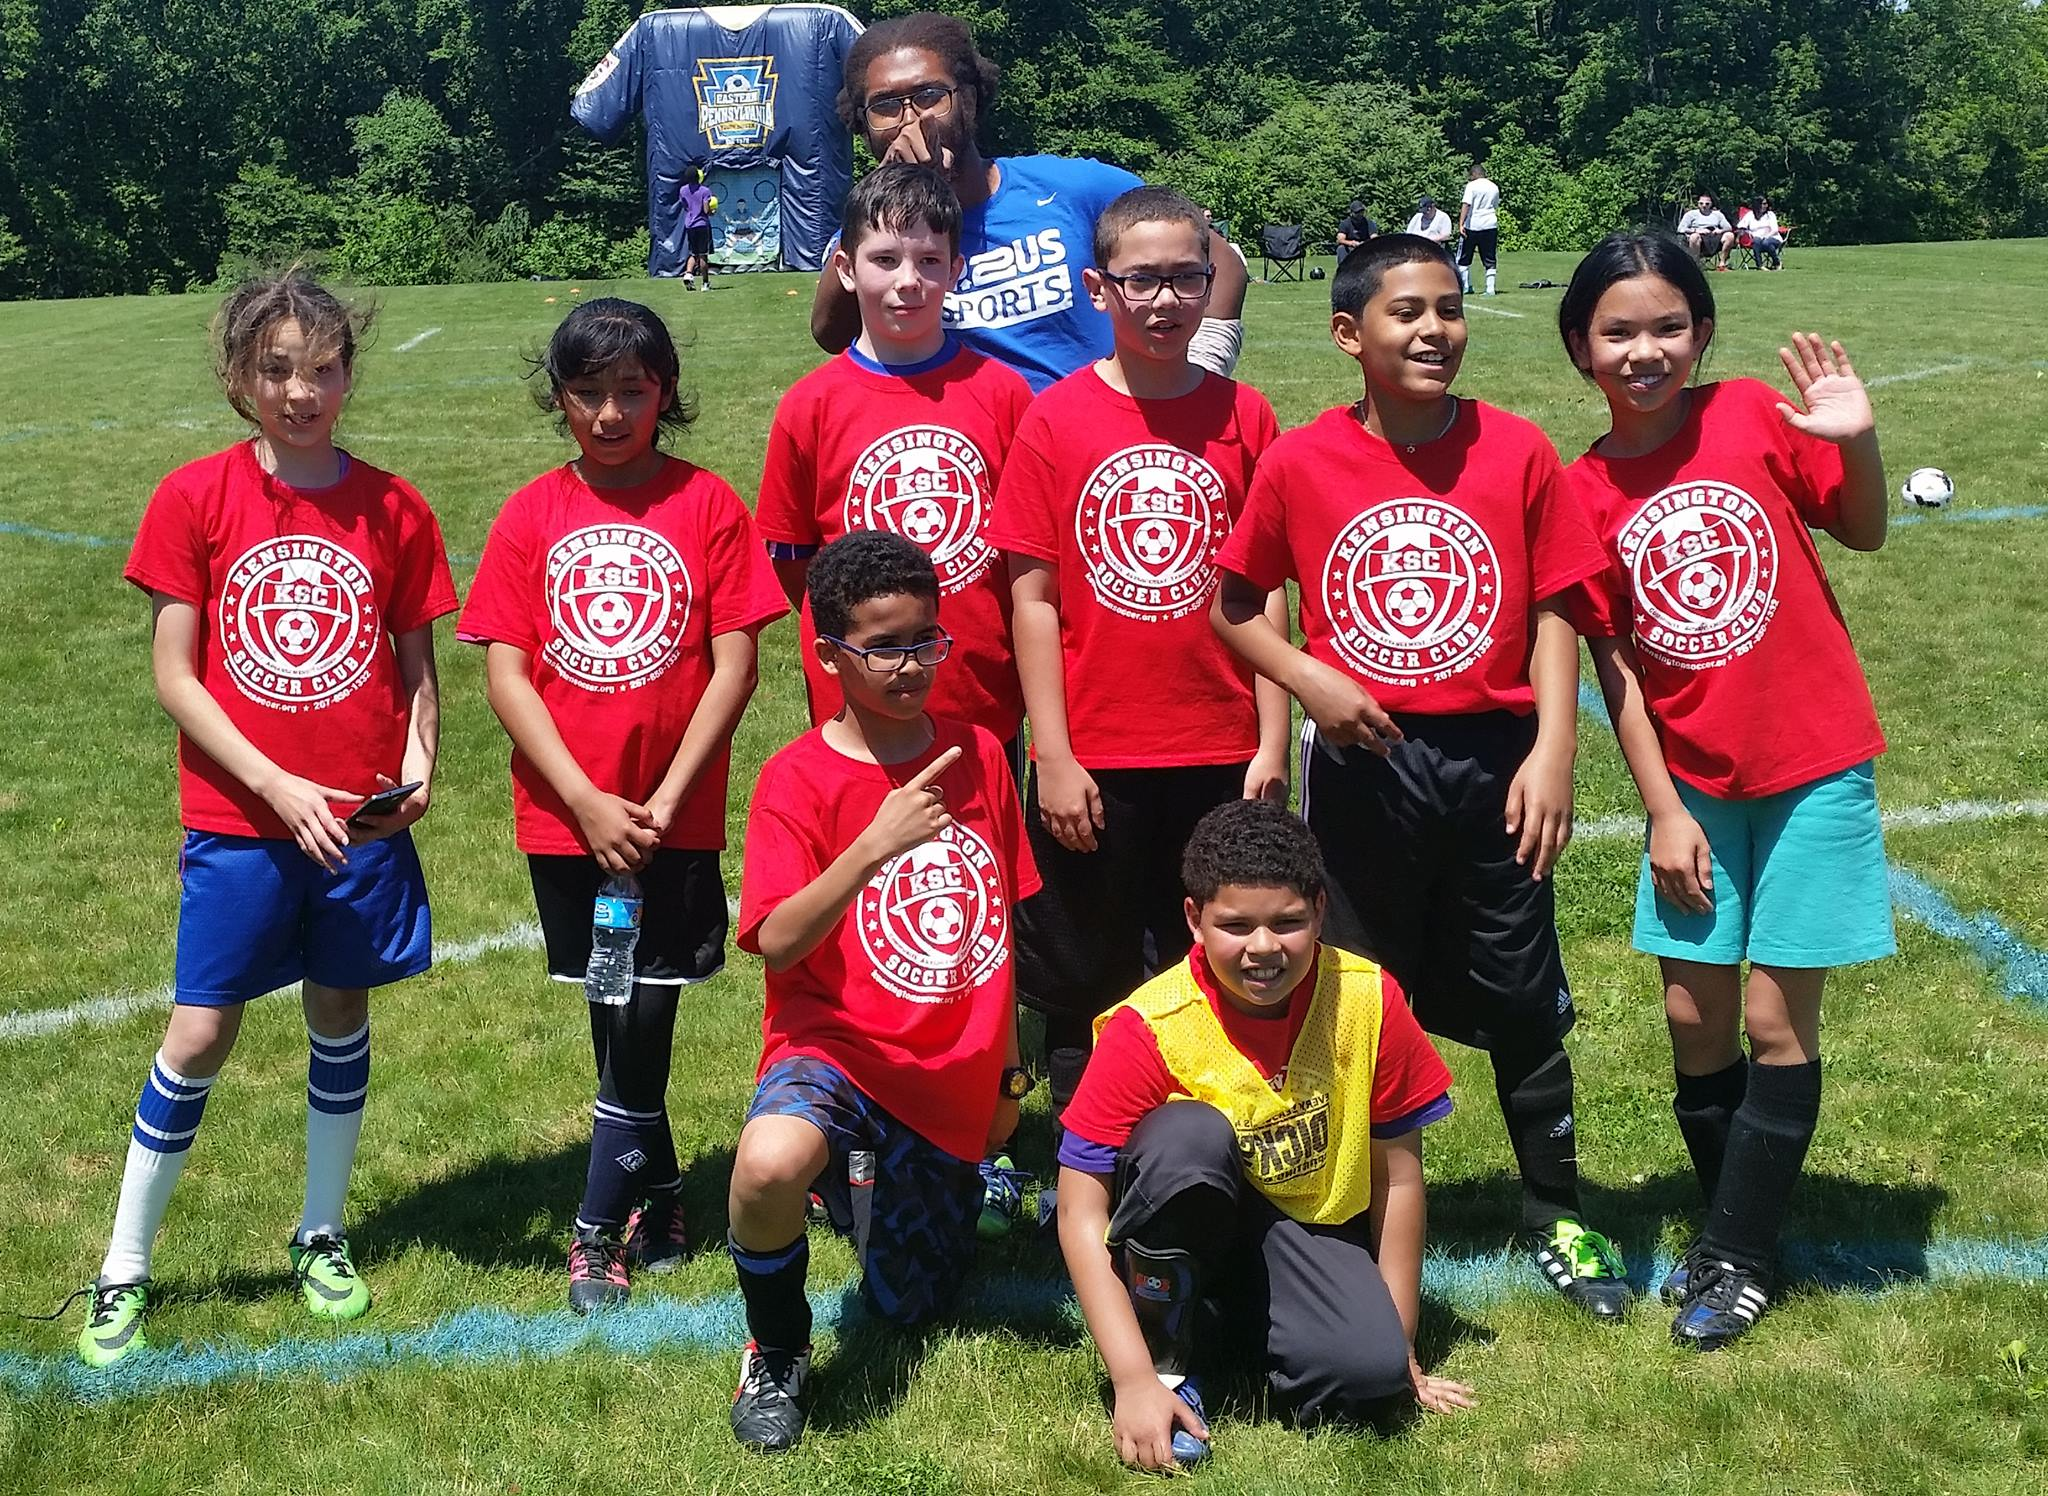 Intramural Boys & Girls   - Birthdates: 2004 to 2010, boy and girl teams organized by agePractice: twice weekdays 6-7:30PMGame Days: Saturdays 11:30AM or 1PM